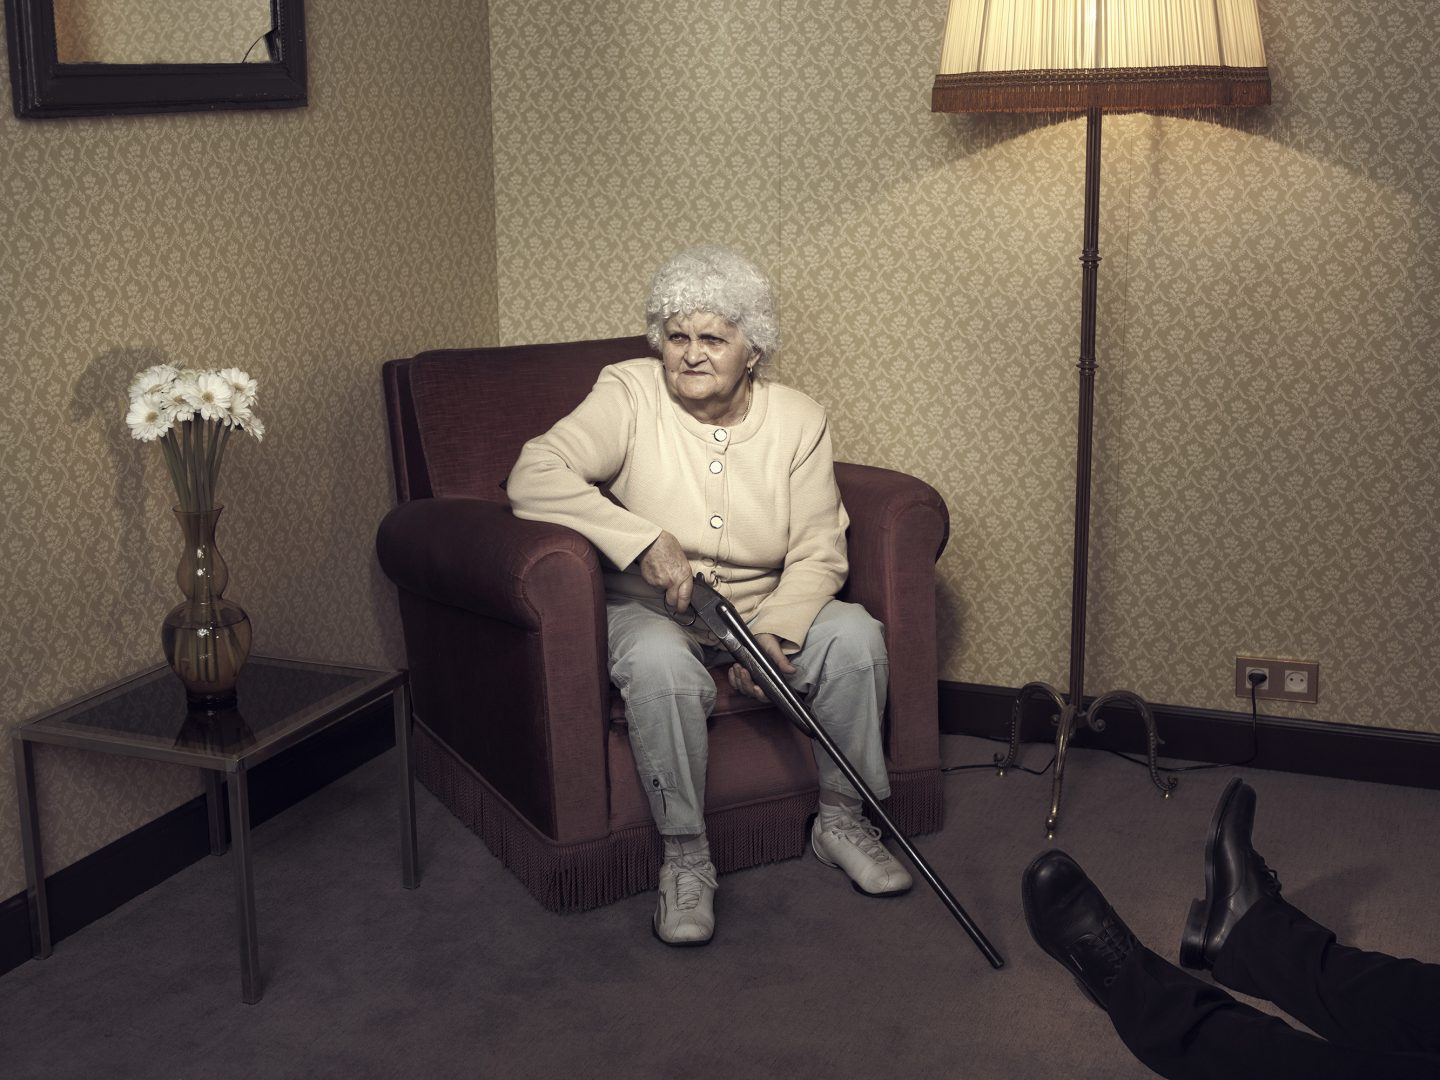 Old lady sitting in chair with gun in room 42 by Stefan Rappo